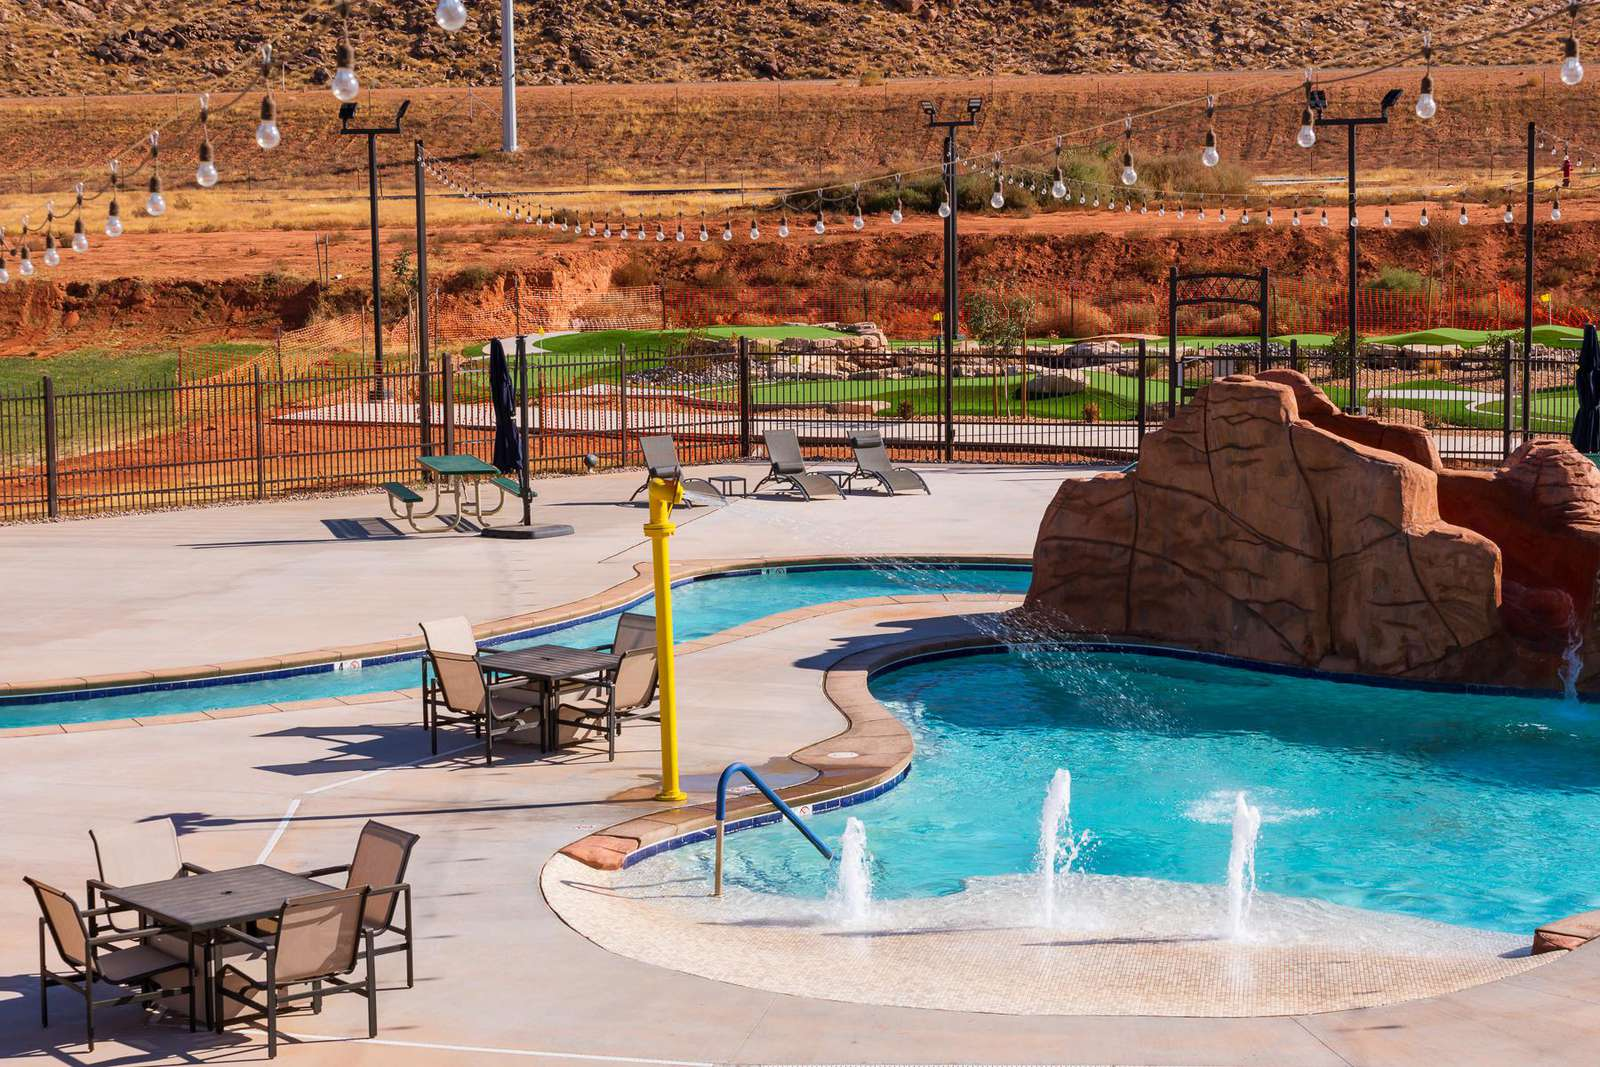 splash pad/lazy river